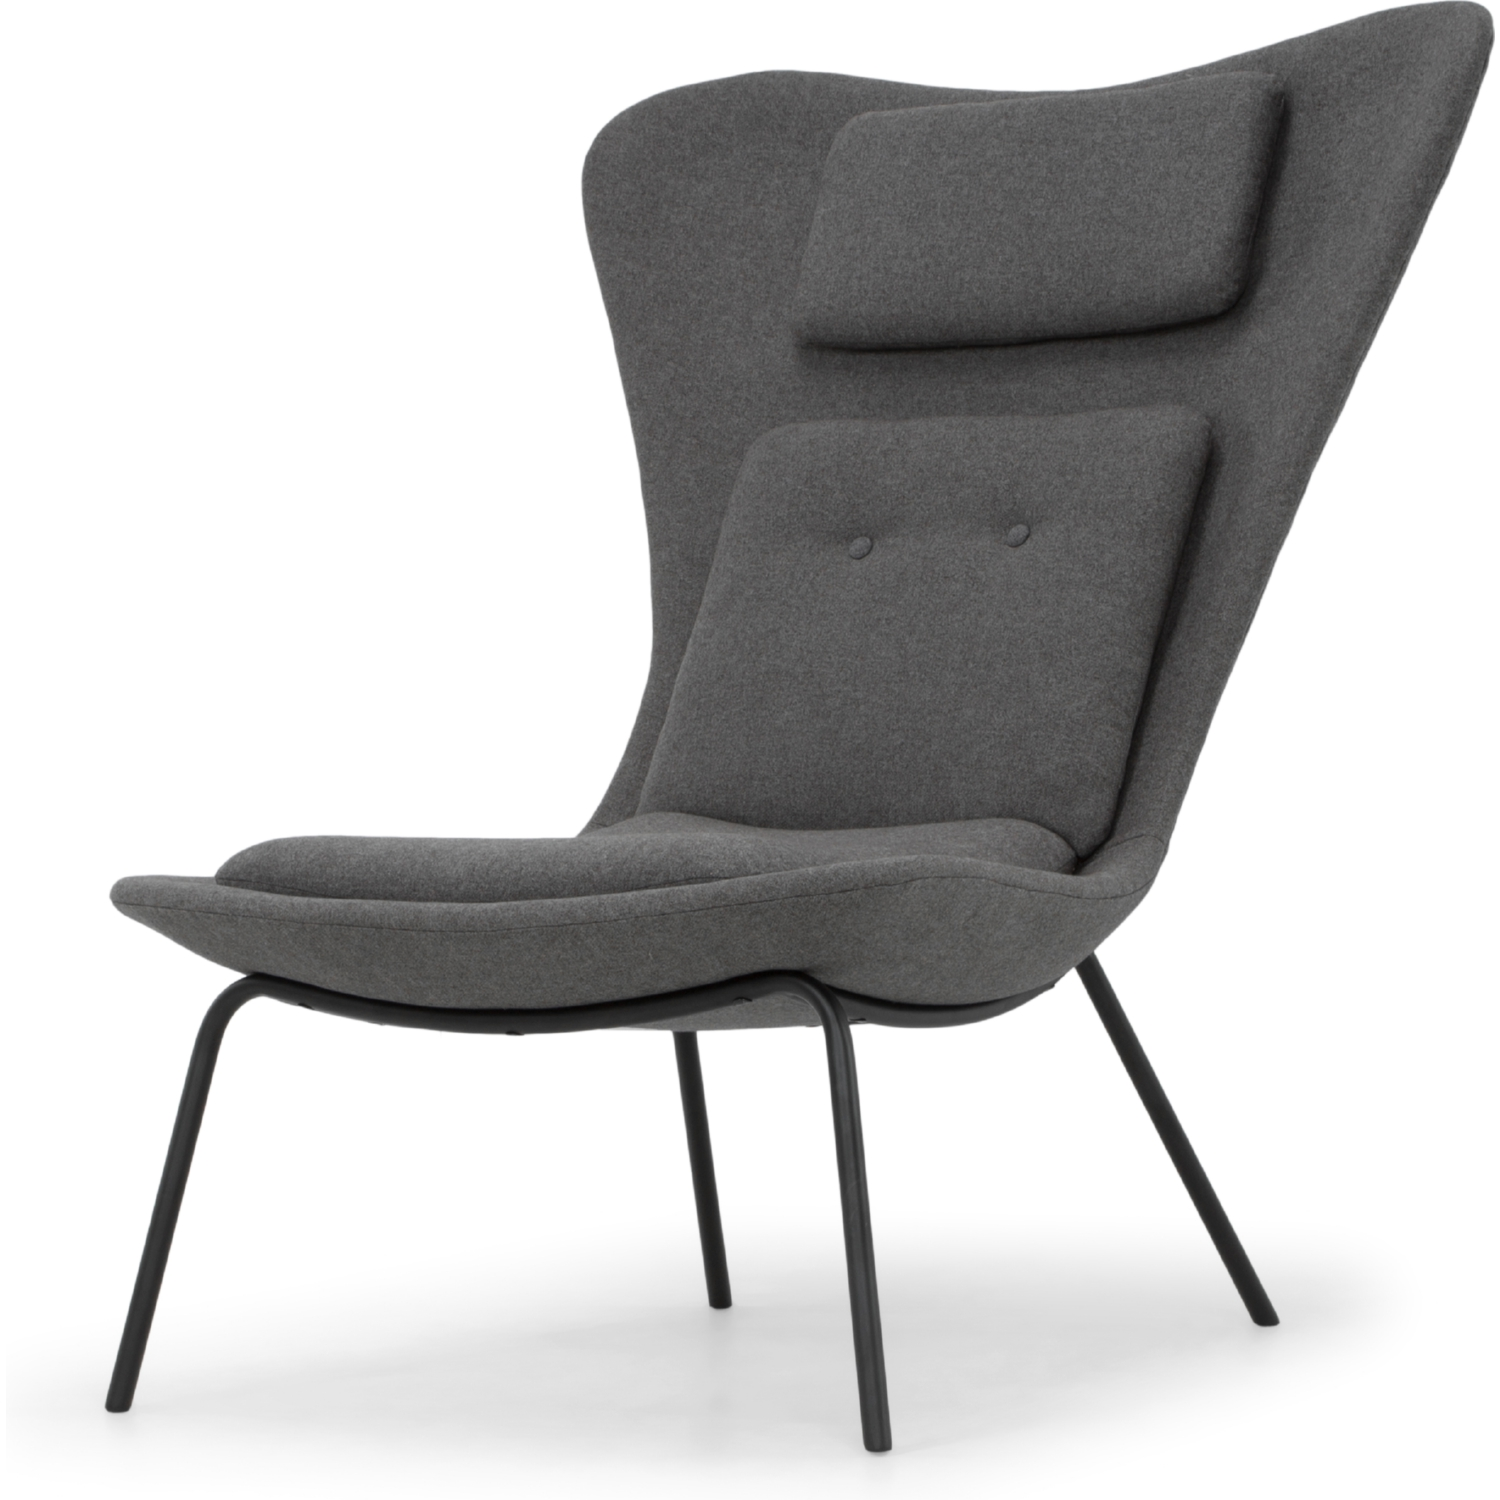 Amazing Barlow Accent Chair In Fossil Grey Fabric On Black Steel Legs By Nuevo Modern Furniture Theyellowbook Wood Chair Design Ideas Theyellowbookinfo